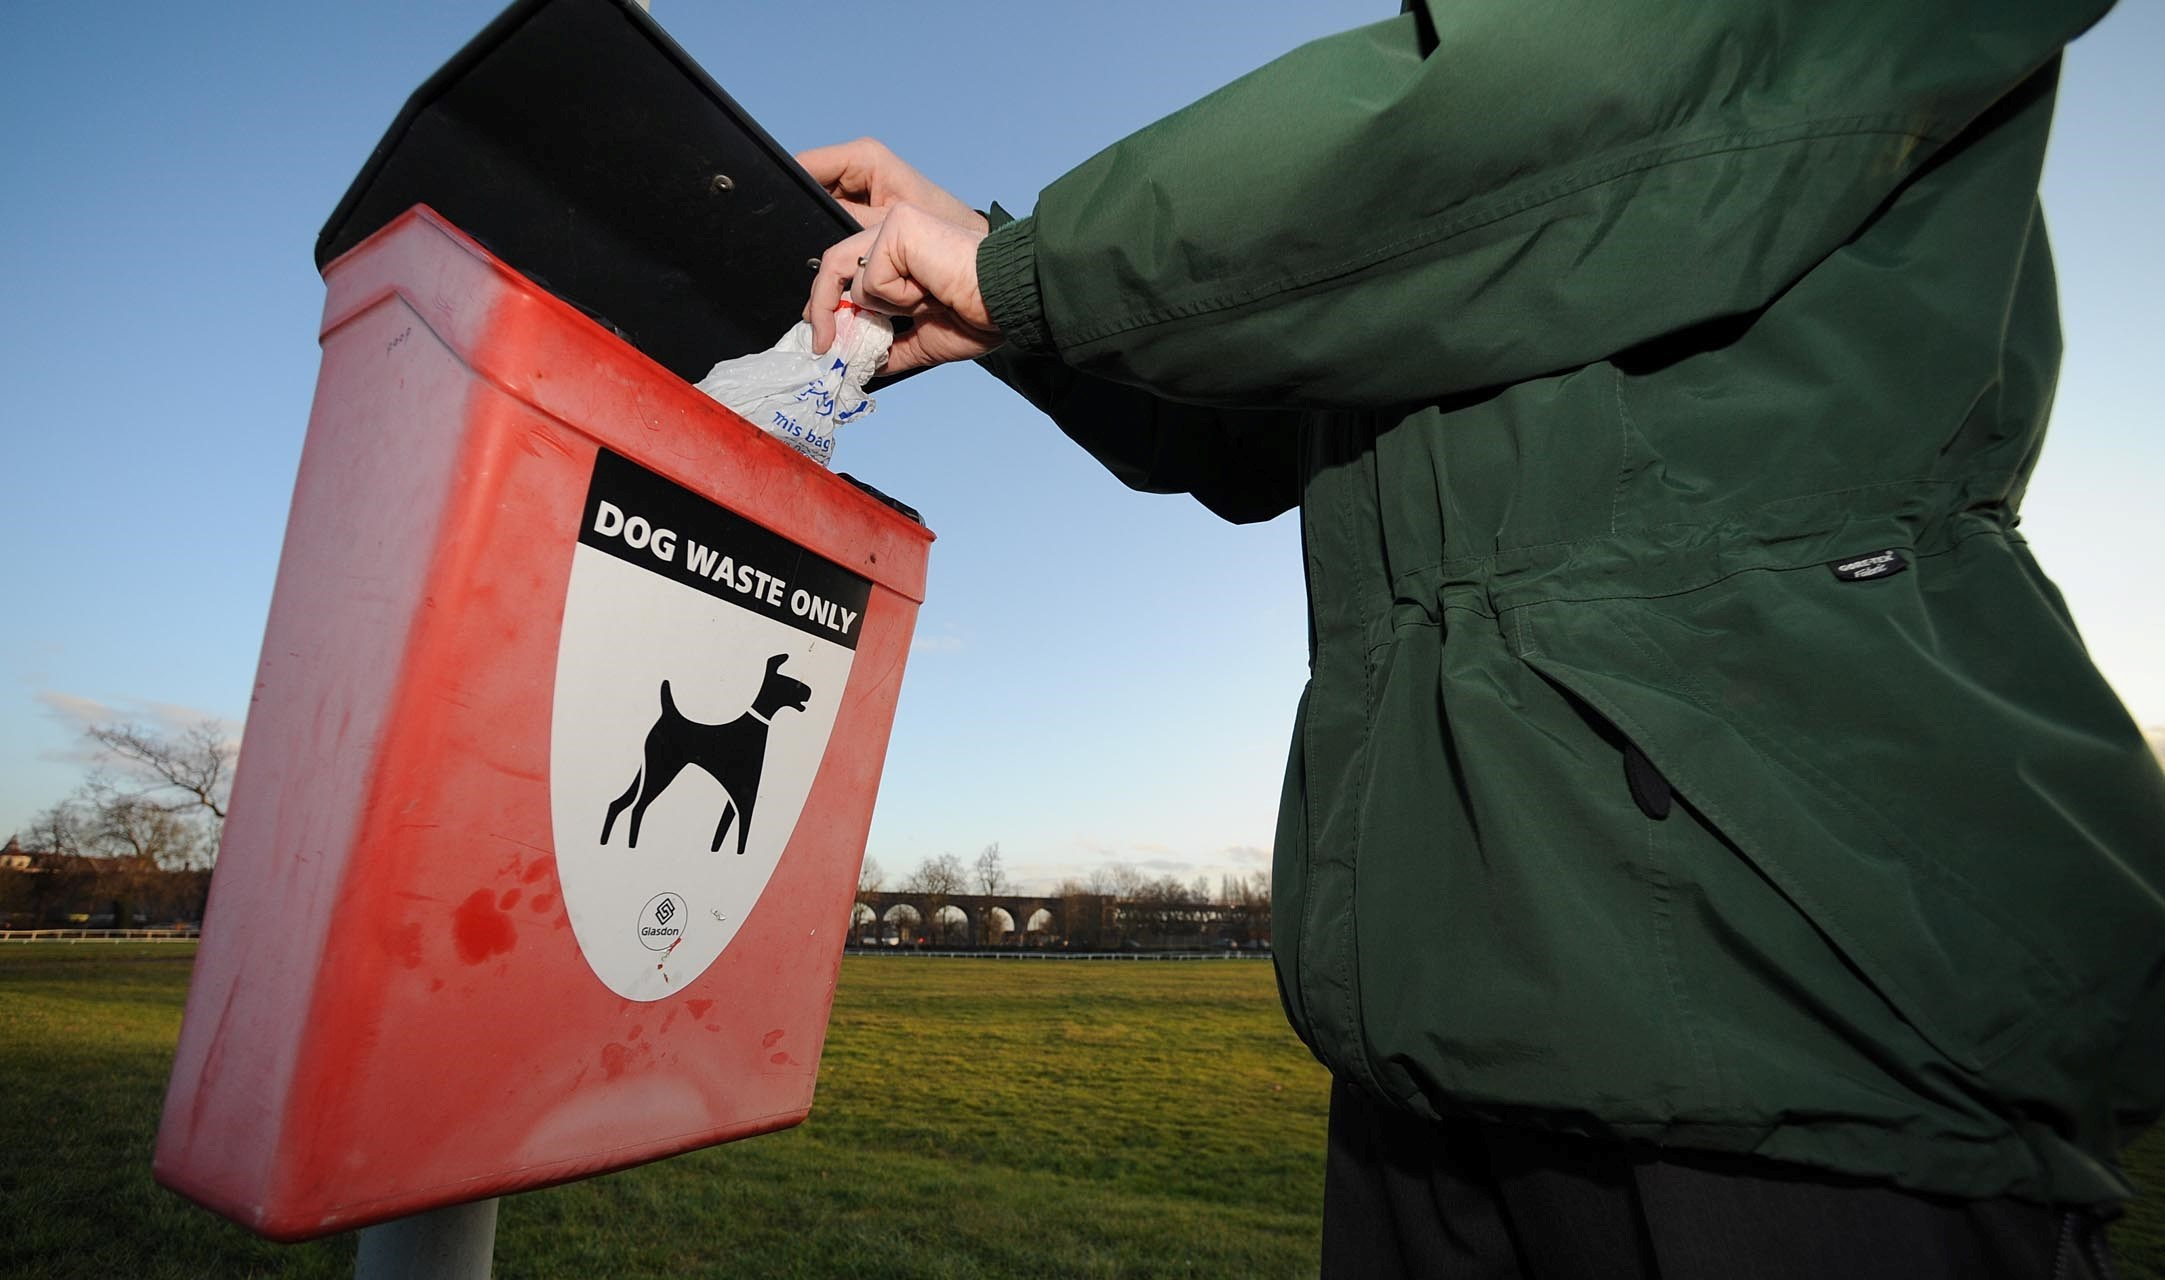 Jonathan Barry - 05/02/10. Pic of dog waste bin on Pitchcroft..